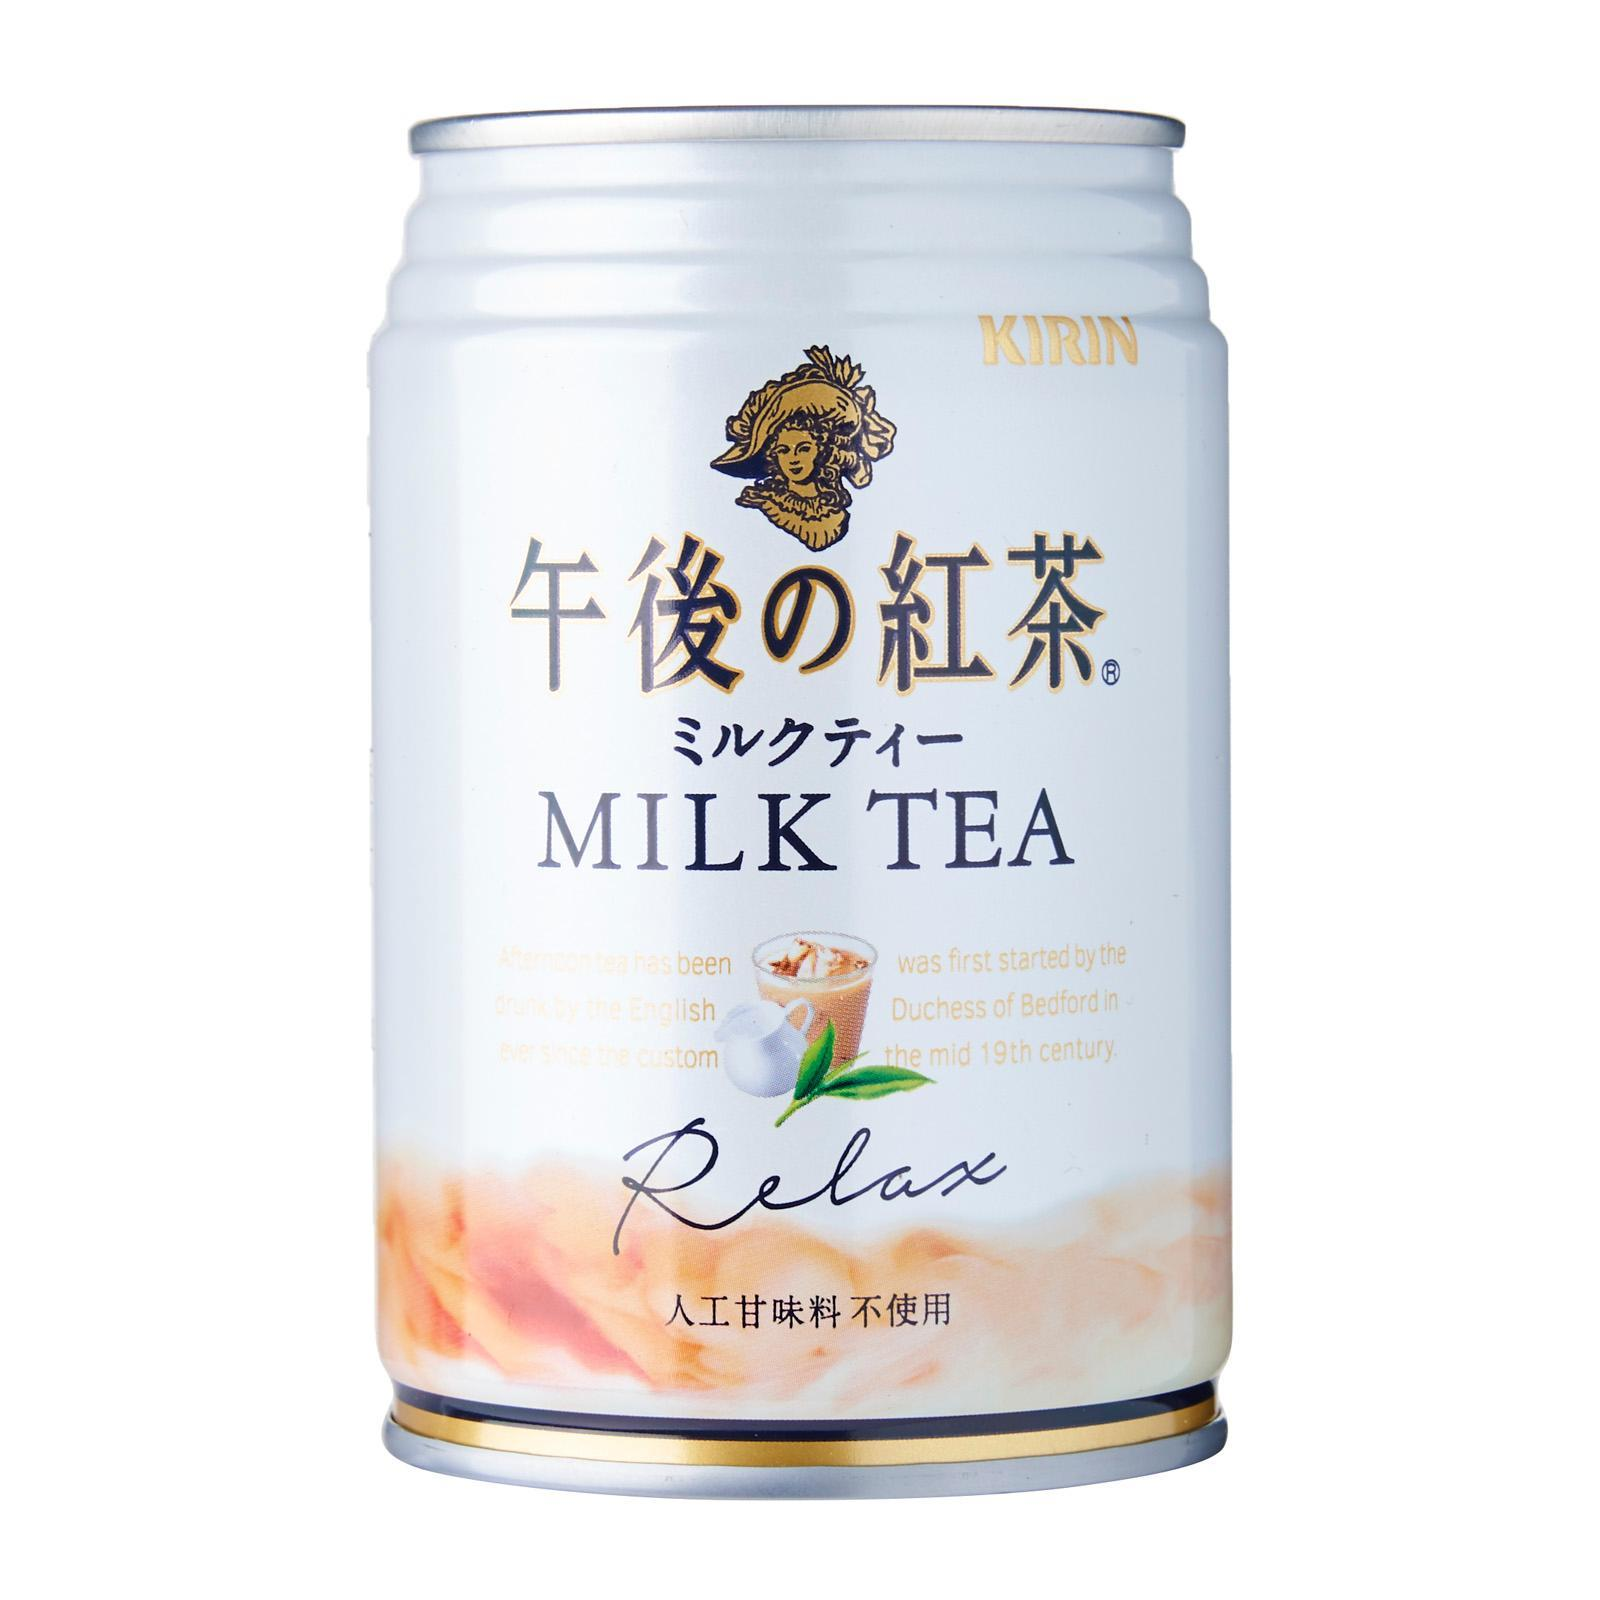 Kirei Kirin Afternoon Tea Milk Tea RELAX EDITION